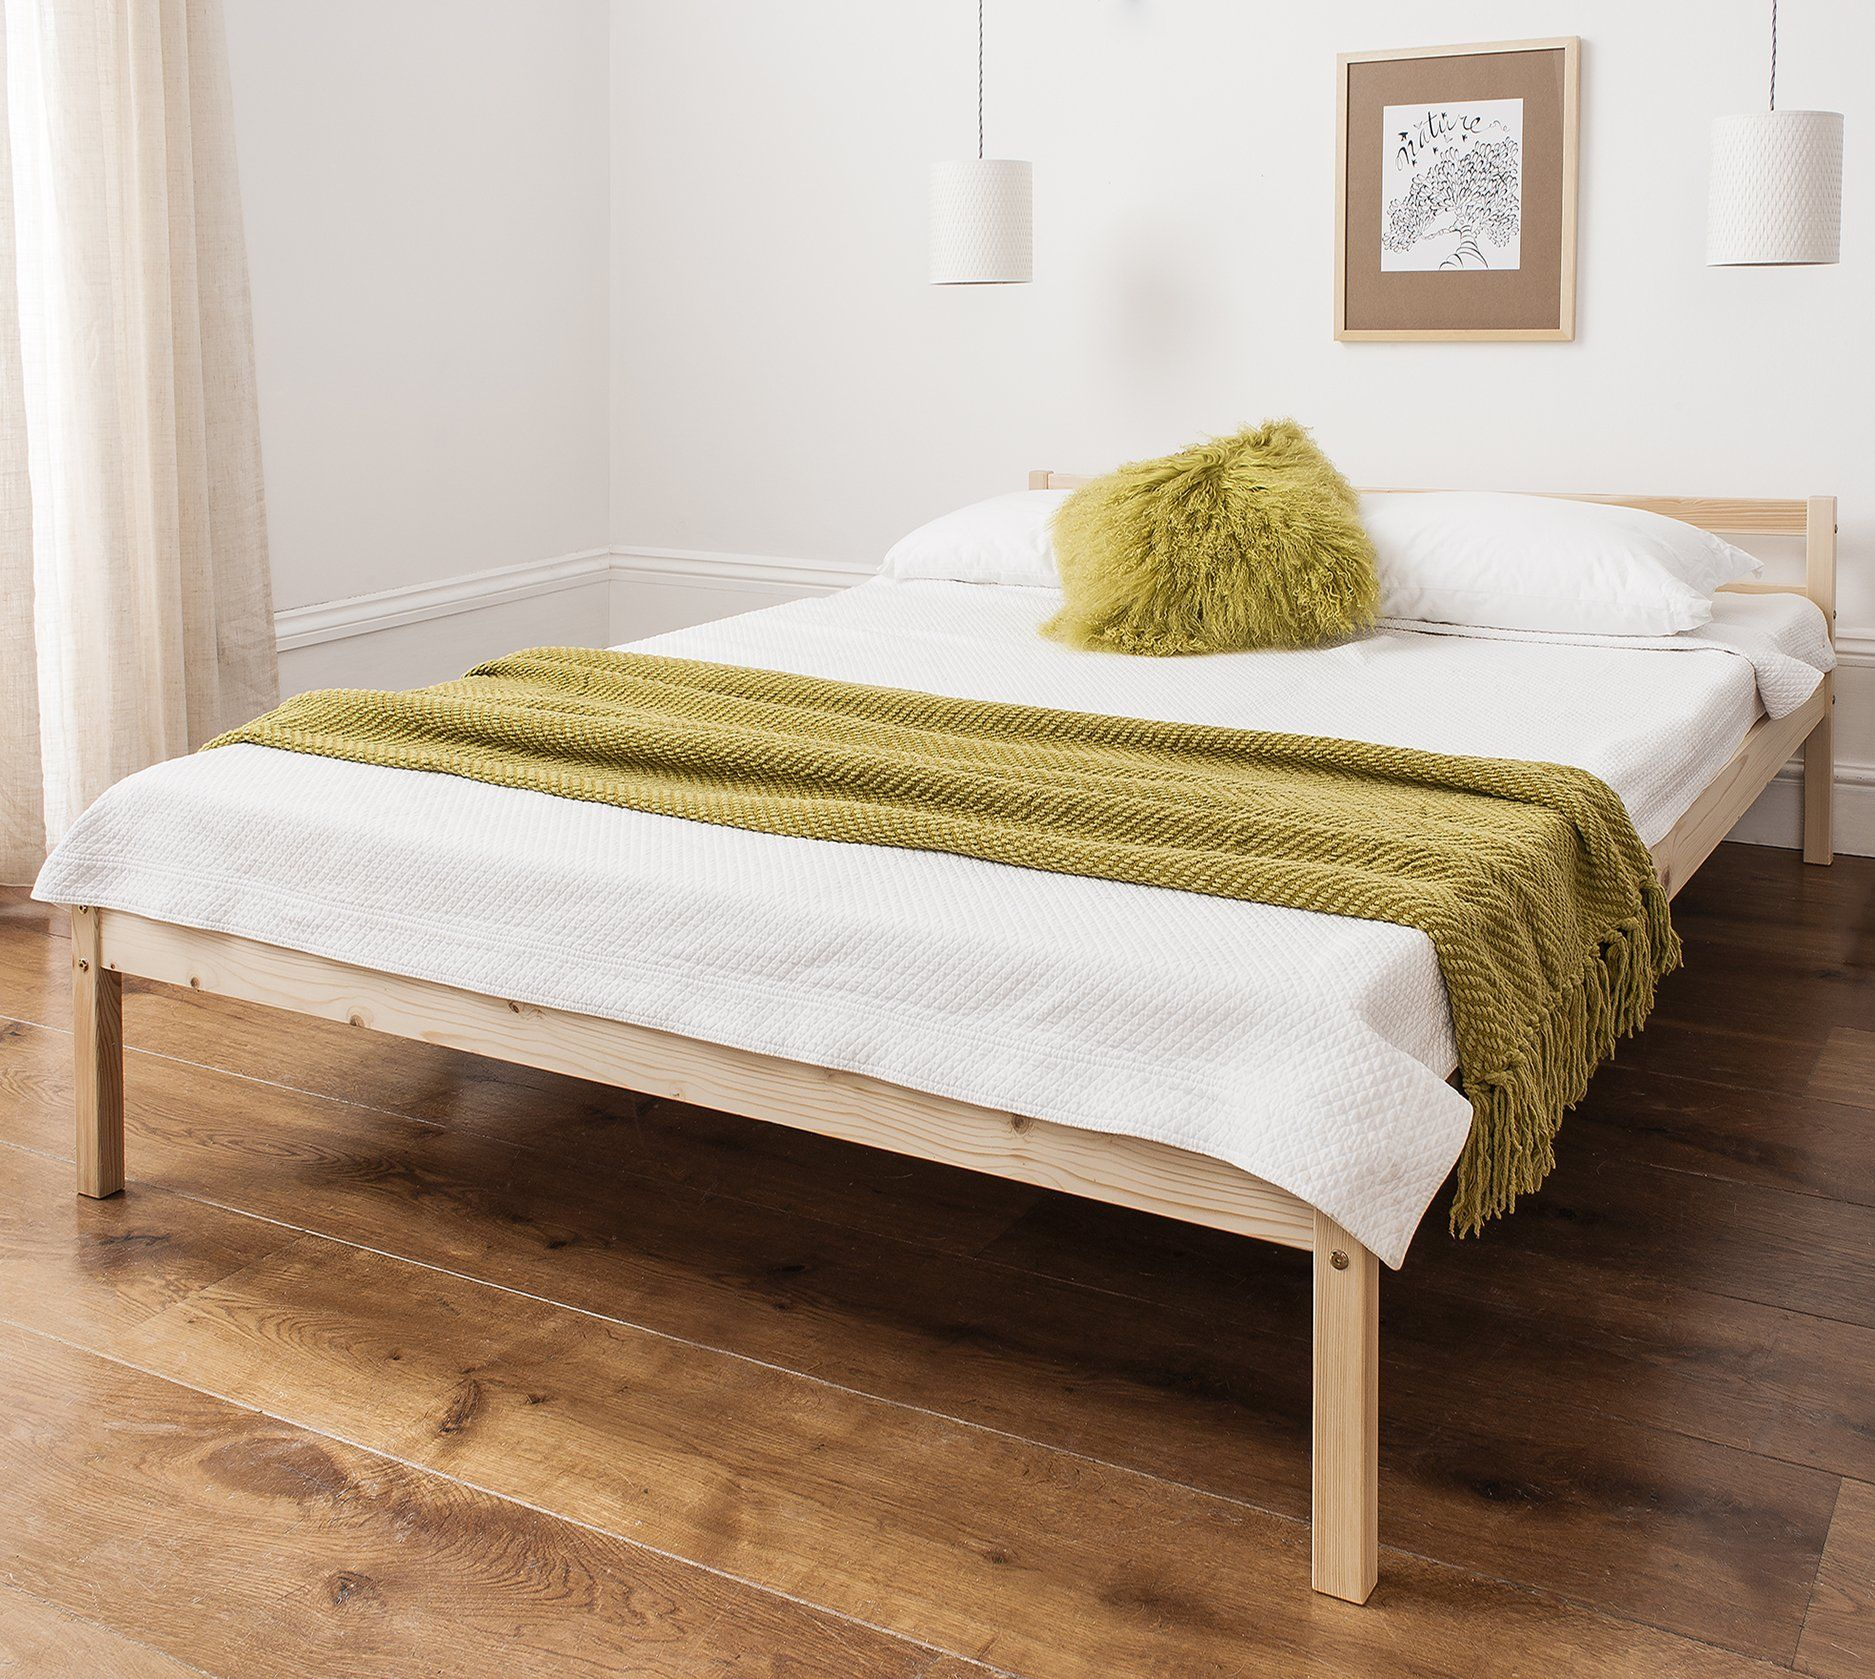 60 Double Bed Pine 4 6 Double Bed Wooden Frame Sussex Amazon Co - Garden Furniture Clearance Company Dorset